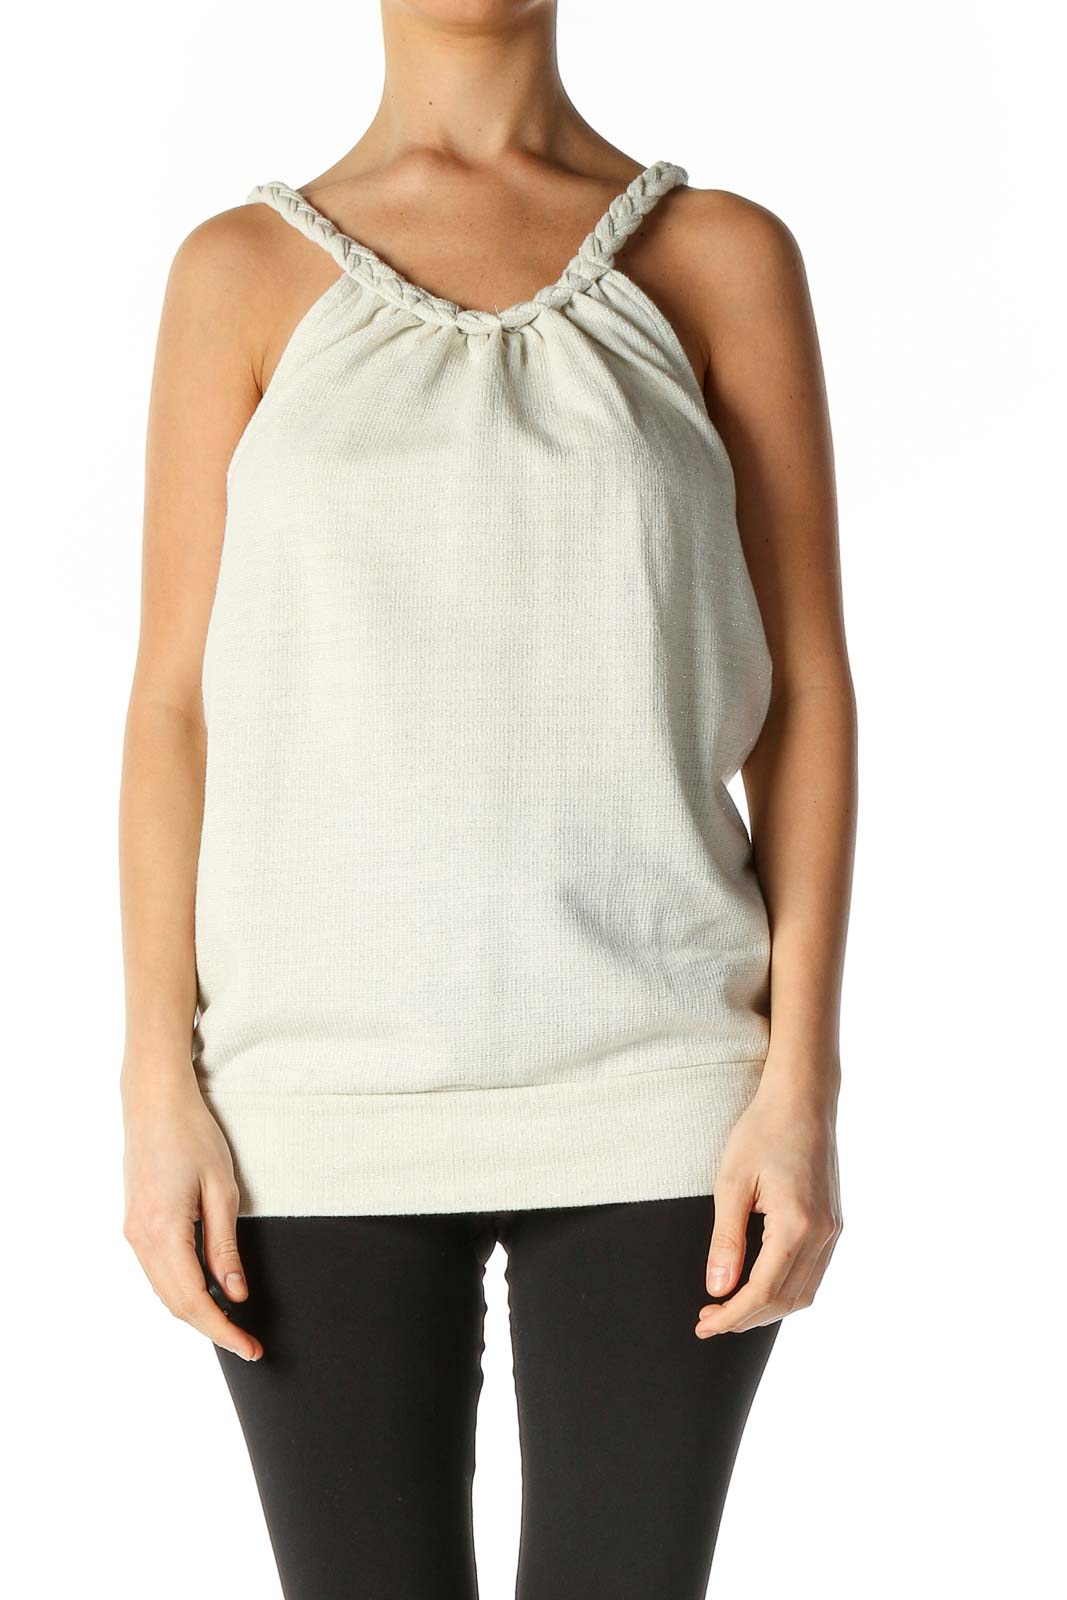 White Texture Casual Blouse Front